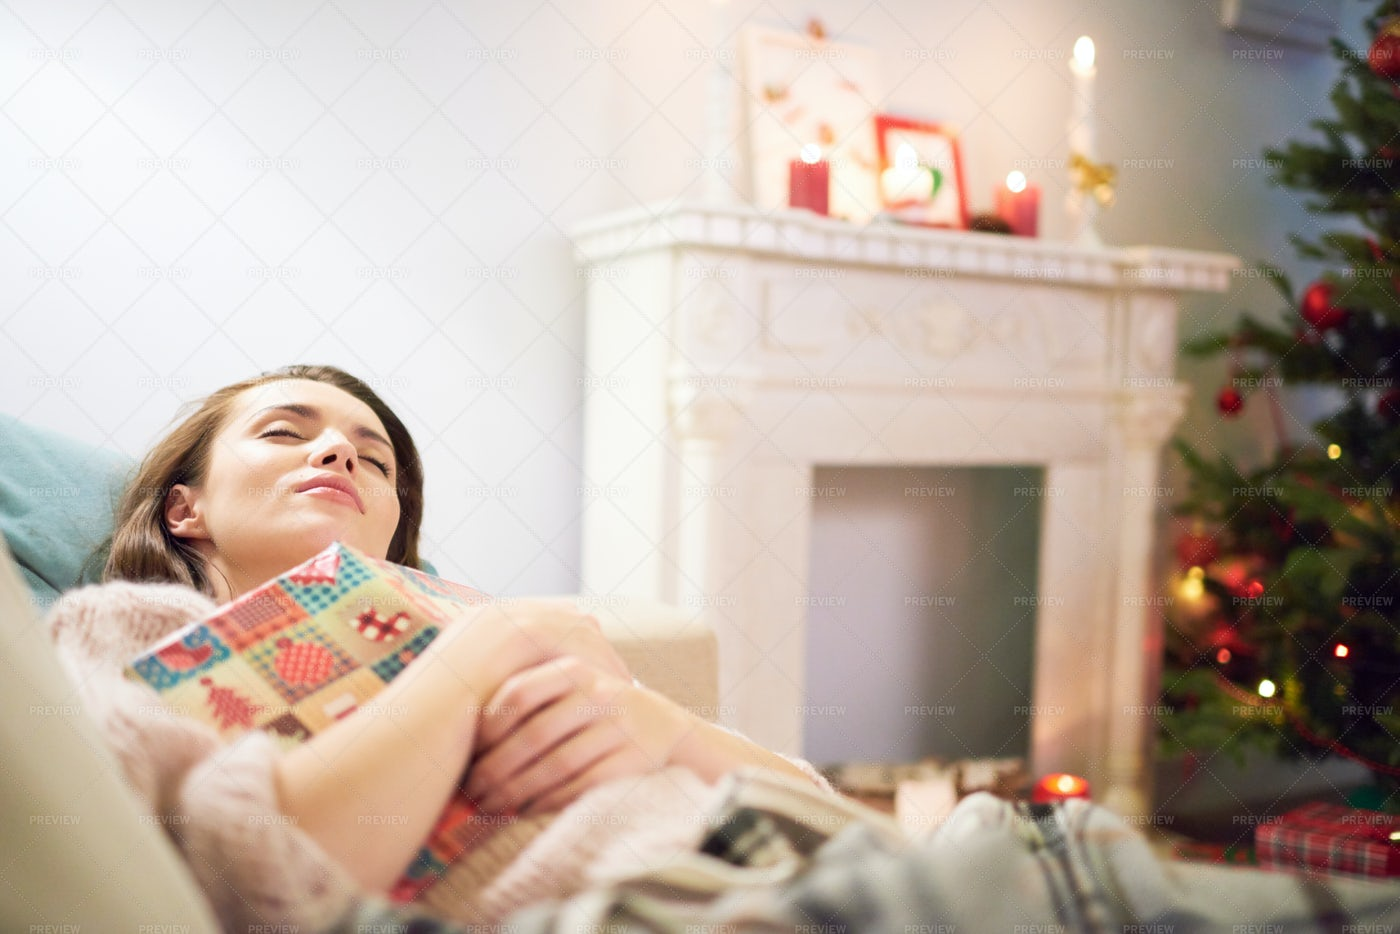 Taking Nap In Living Room: Stock Photos